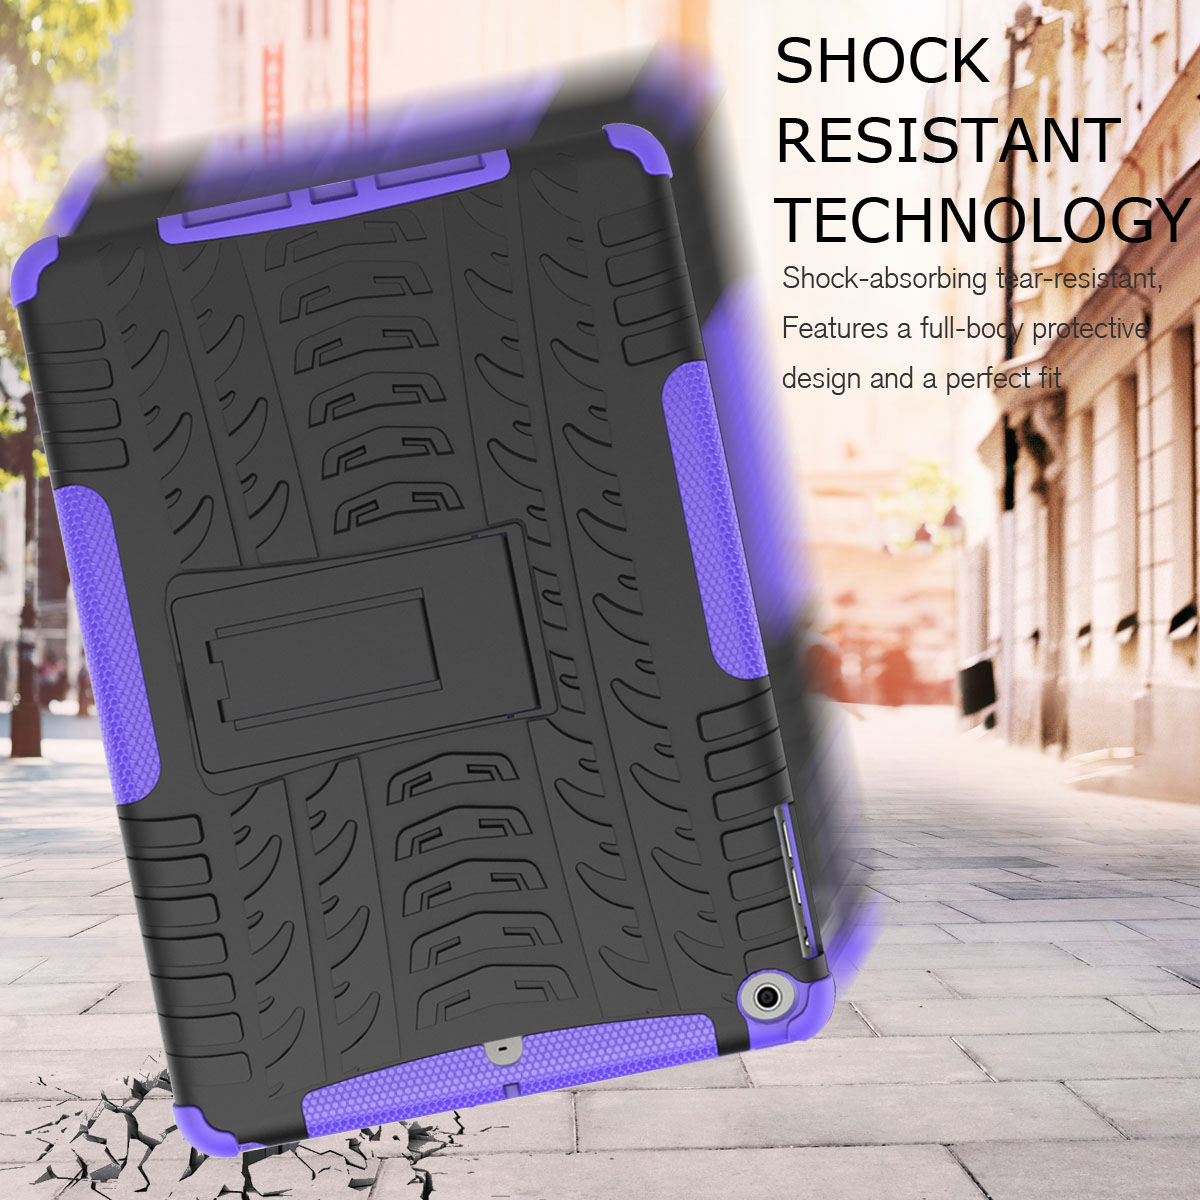 Hybrid-Rubber-Shockproof-Tough-Case-Cover-For-Apple-iPad-9-7-Air-Pro-Mini-1234 thumbnail 30